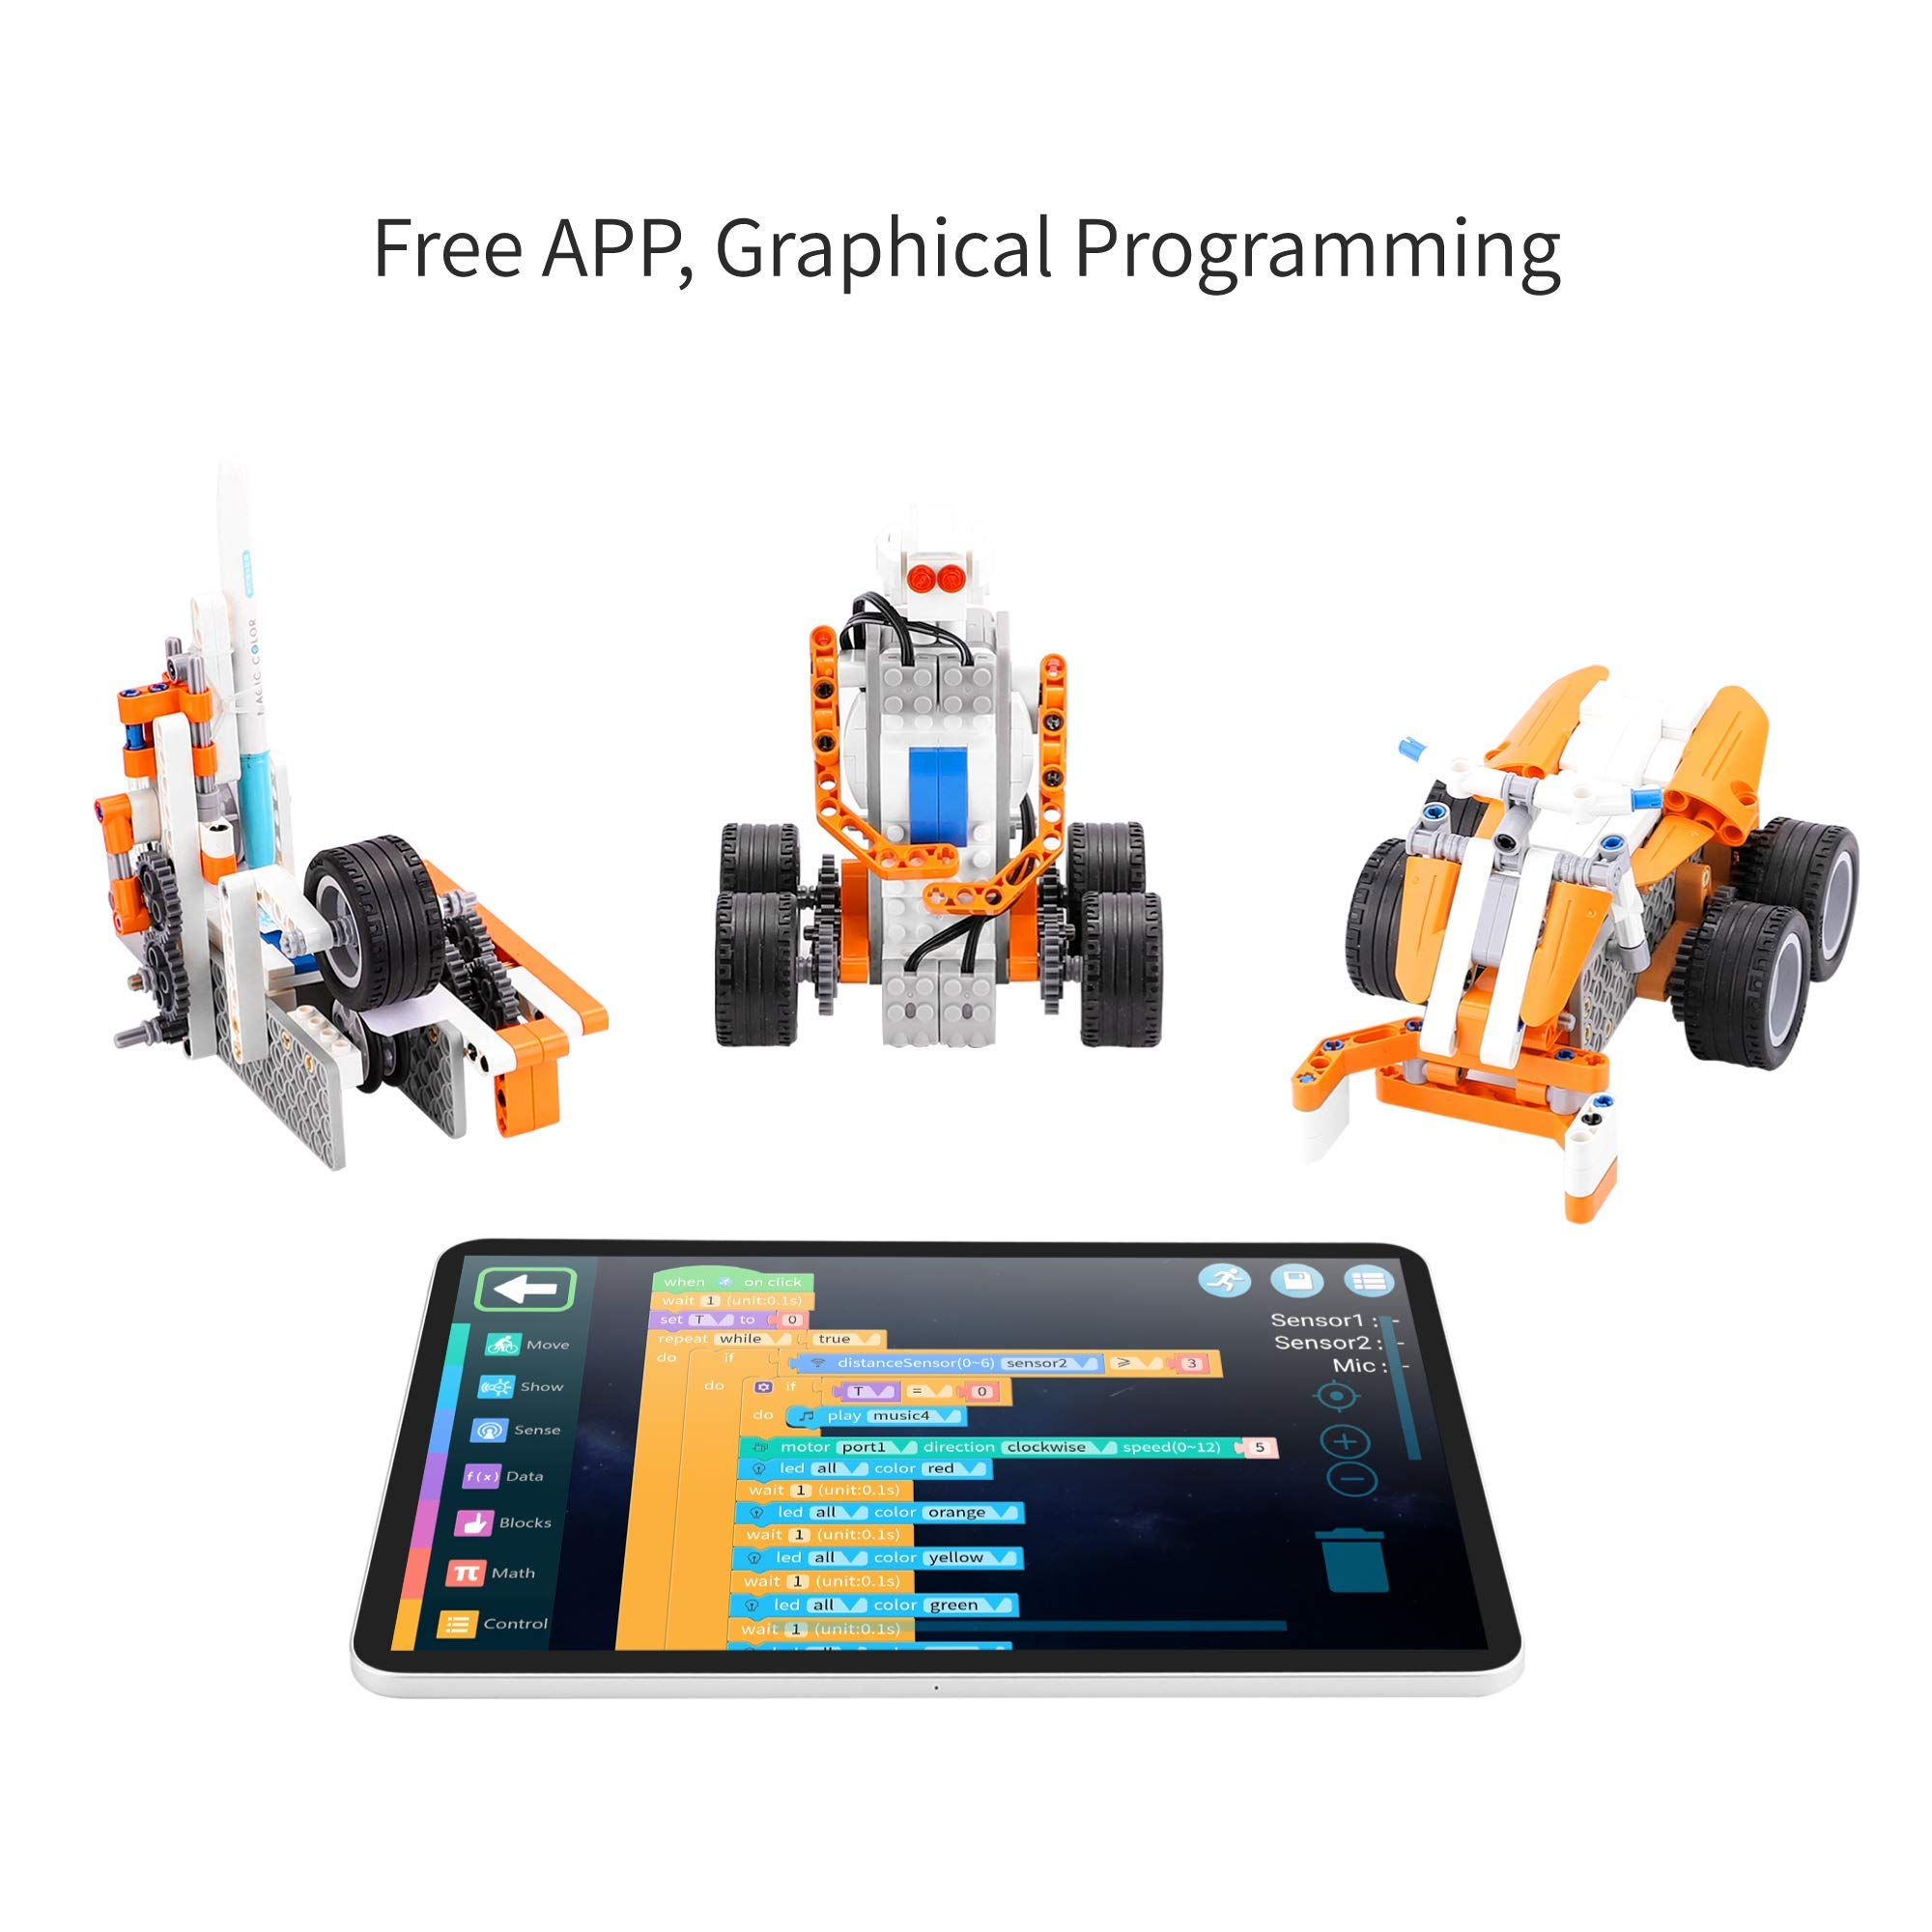 Apitor SuperBot, Educational Building Block 18 in 1 Robot Kit, APP Remote Control, STEM Coding Learning Toy, Ideal Gift for Kids 8+, Compatible with Major Building Block Toys (400+ Pieces) by Apitor Technology Co., Ltd. (Image #3)